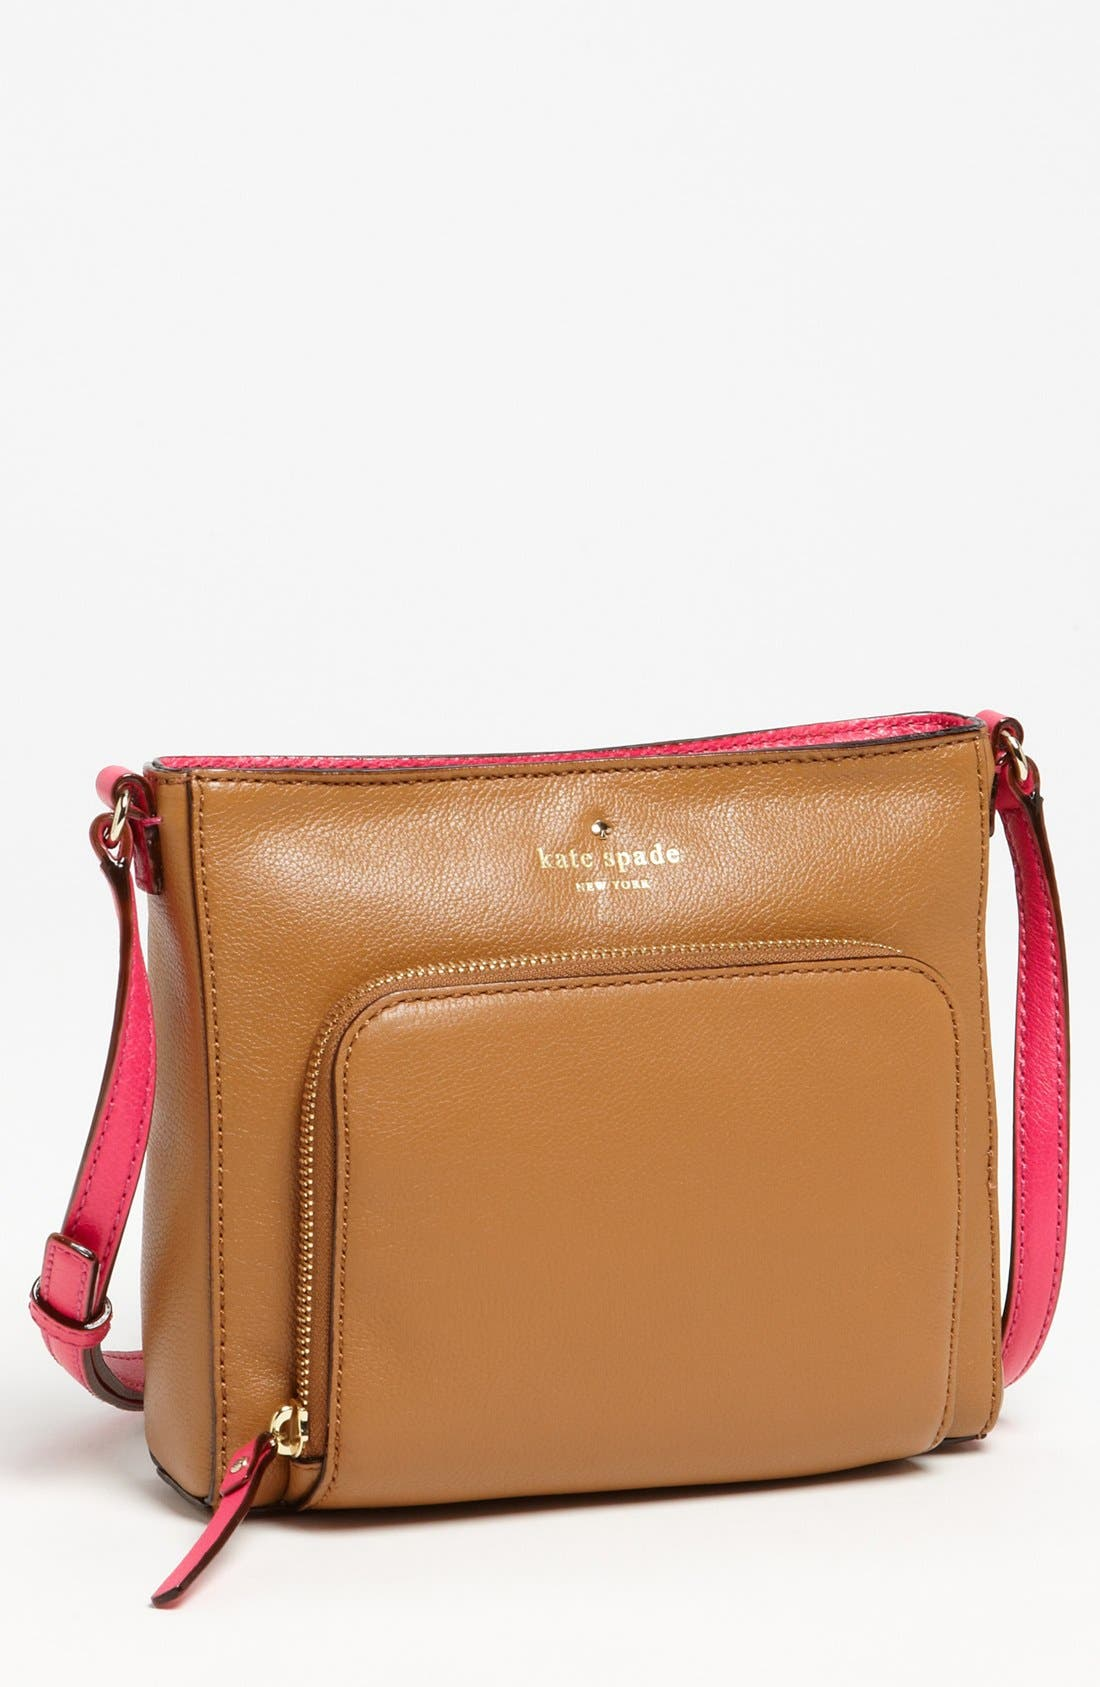 Alternate Image 1 Selected - kate spade 'hester street - bess' crossbody bag